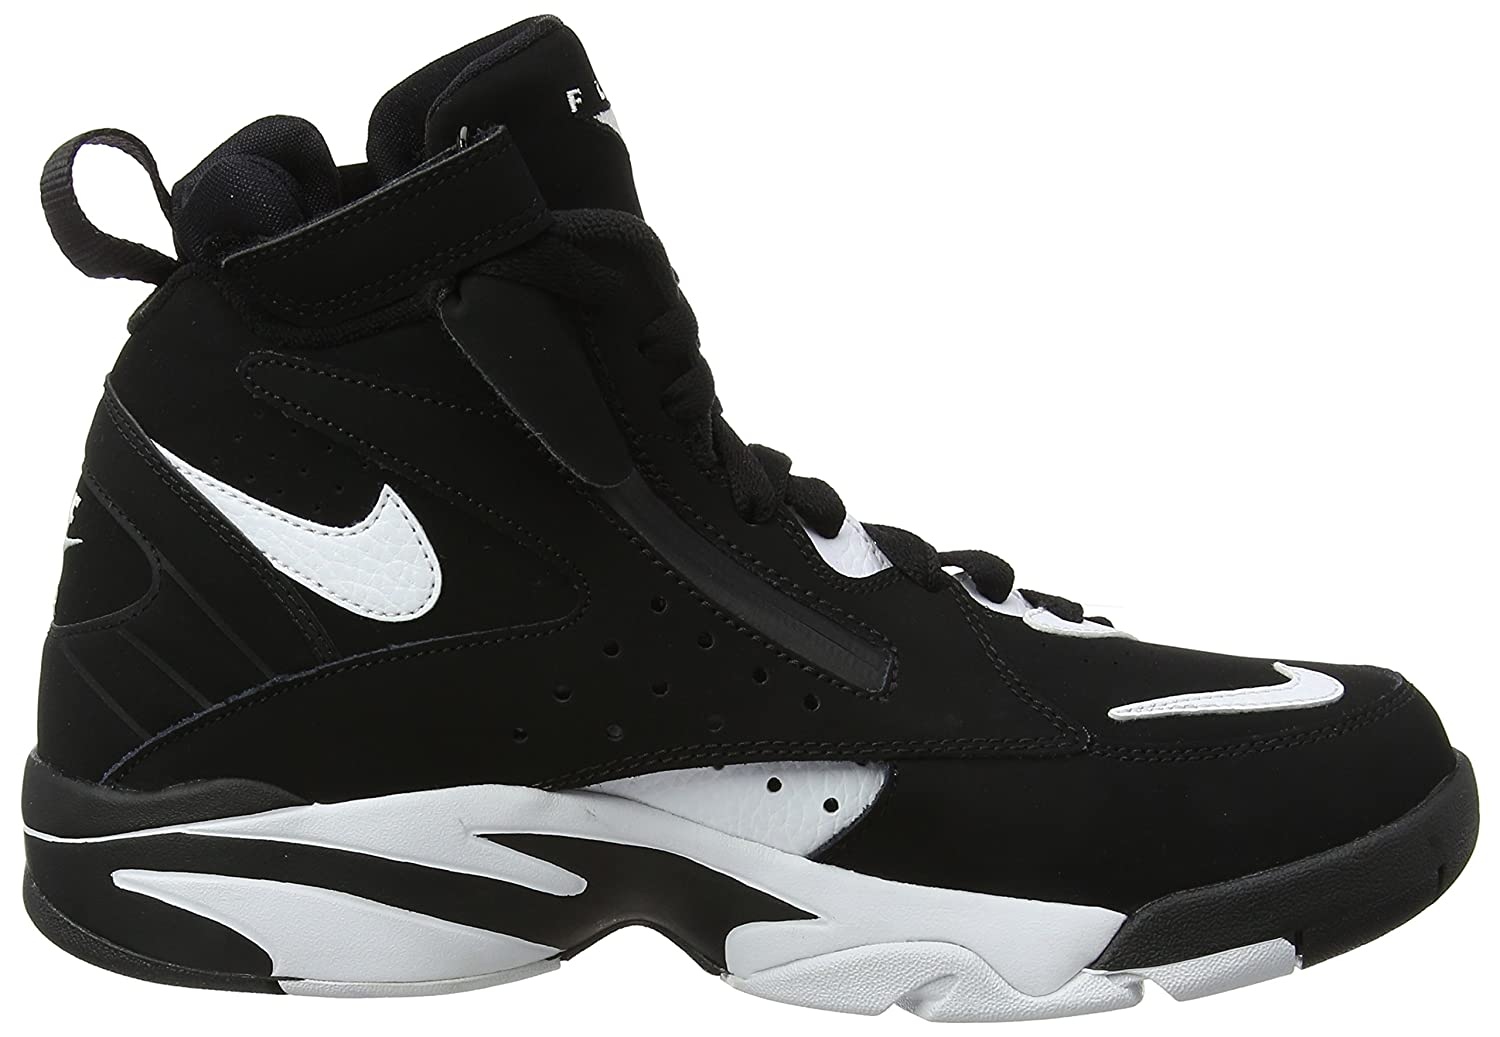 Pour Promot Chaussures De Basketball Homme Ah8511 Rxpkytcl-121201-9455822 Invigorating Blood Circulation And Stopping Pains Nike Air Maestro Ii Ltd